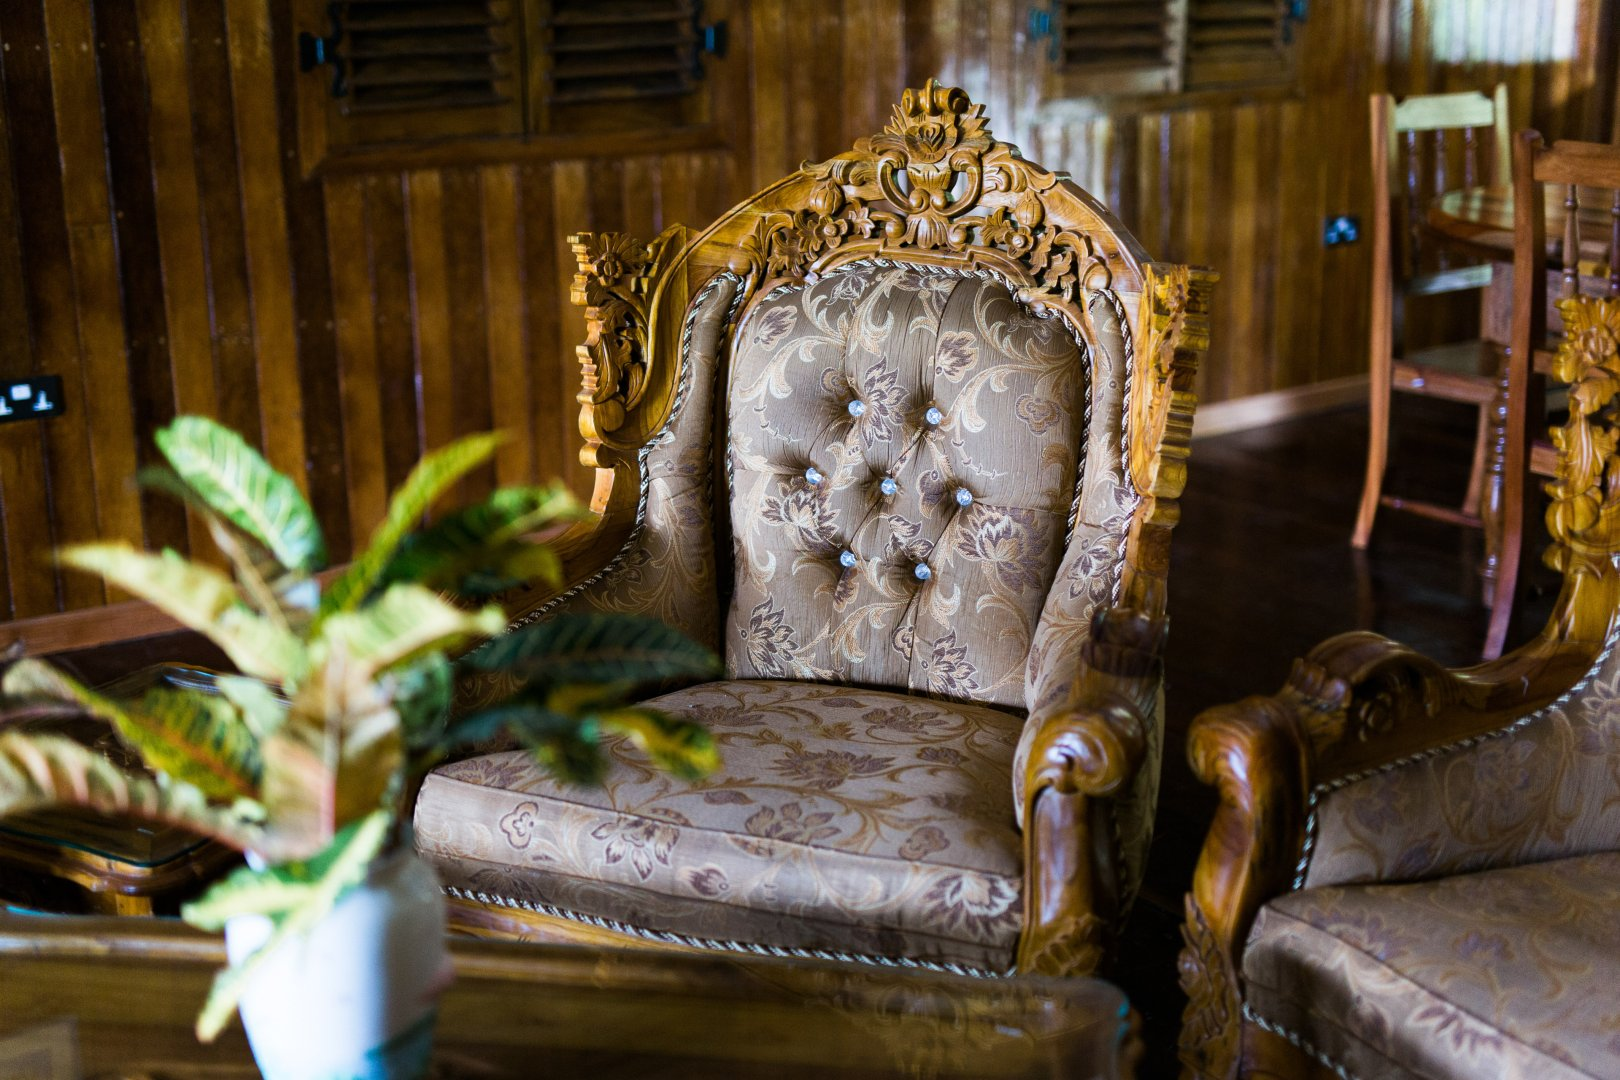 Furniture Chair Room Antique Interior design Couch Wood Plant House Carving Building